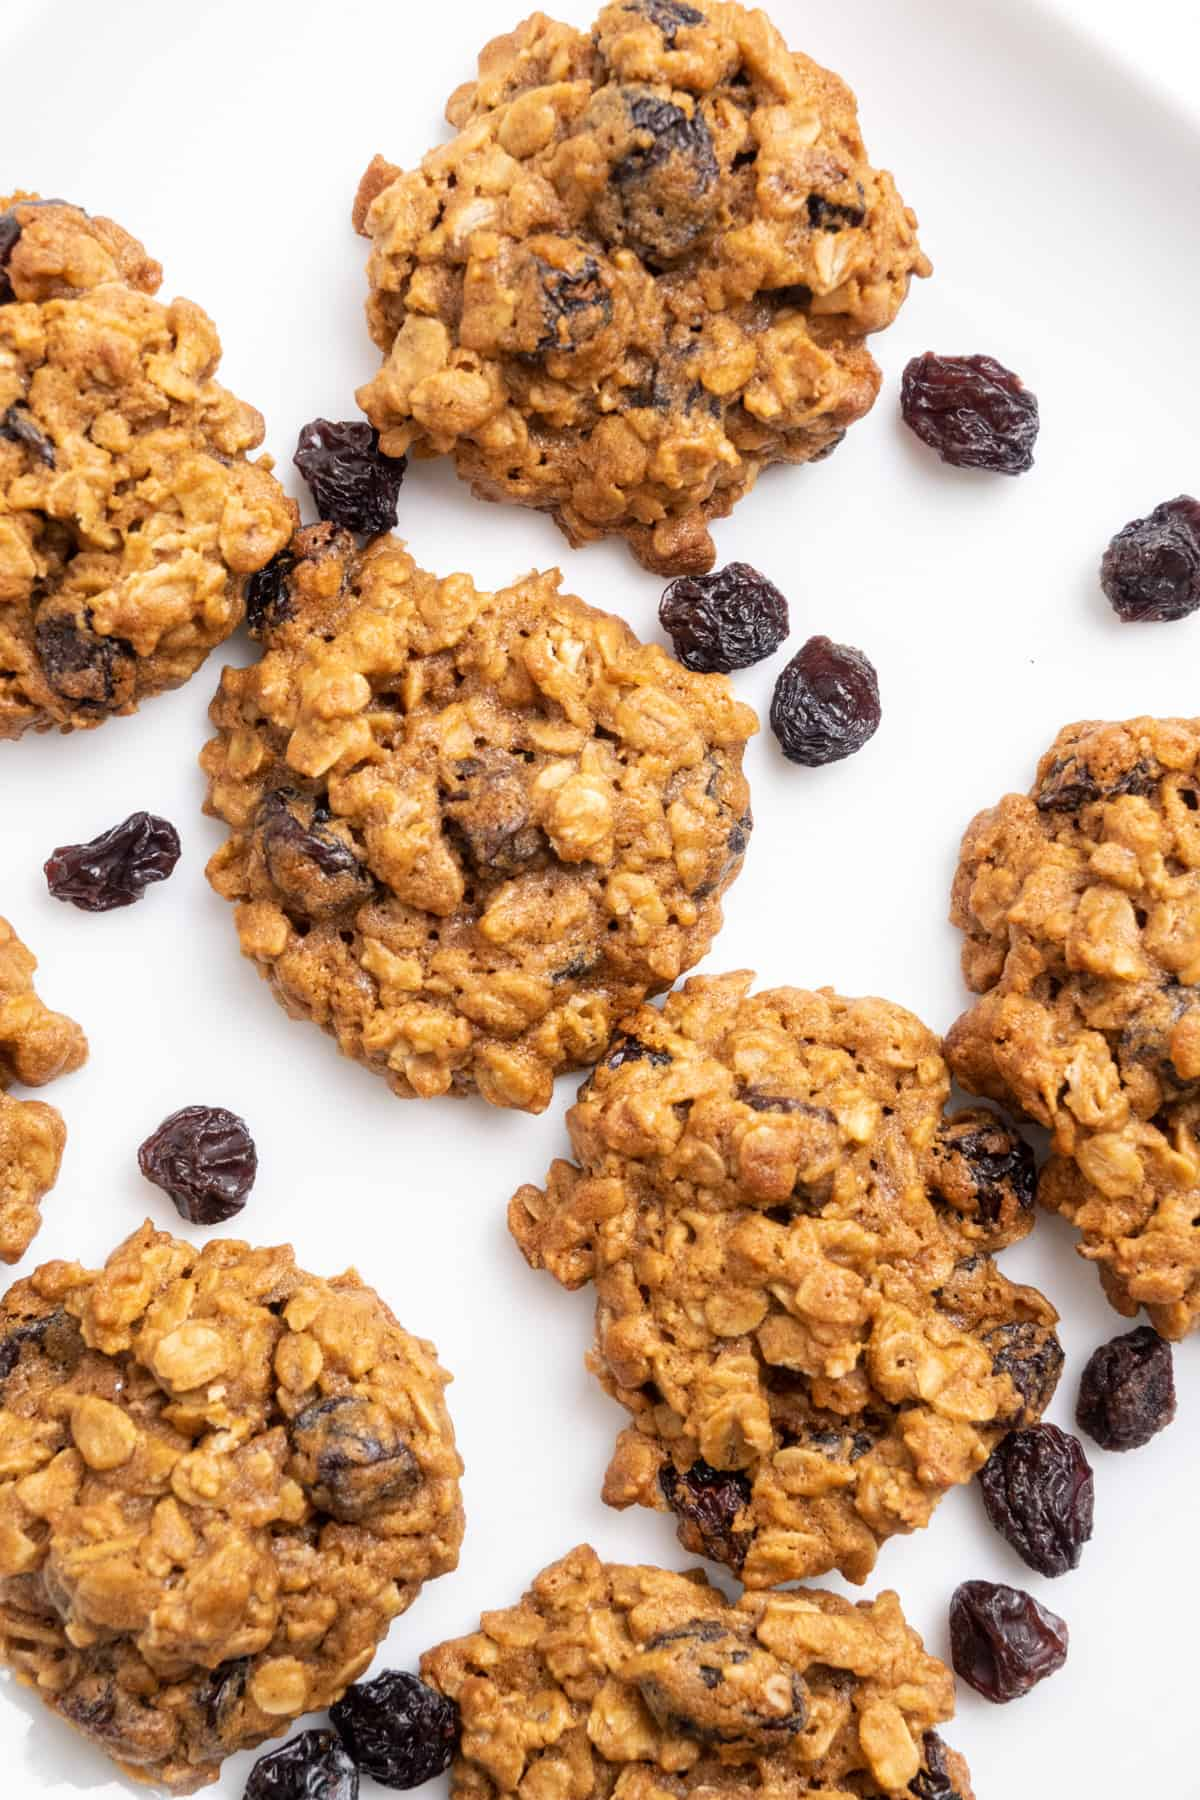 Cookies with oats and raisins on a white surface.